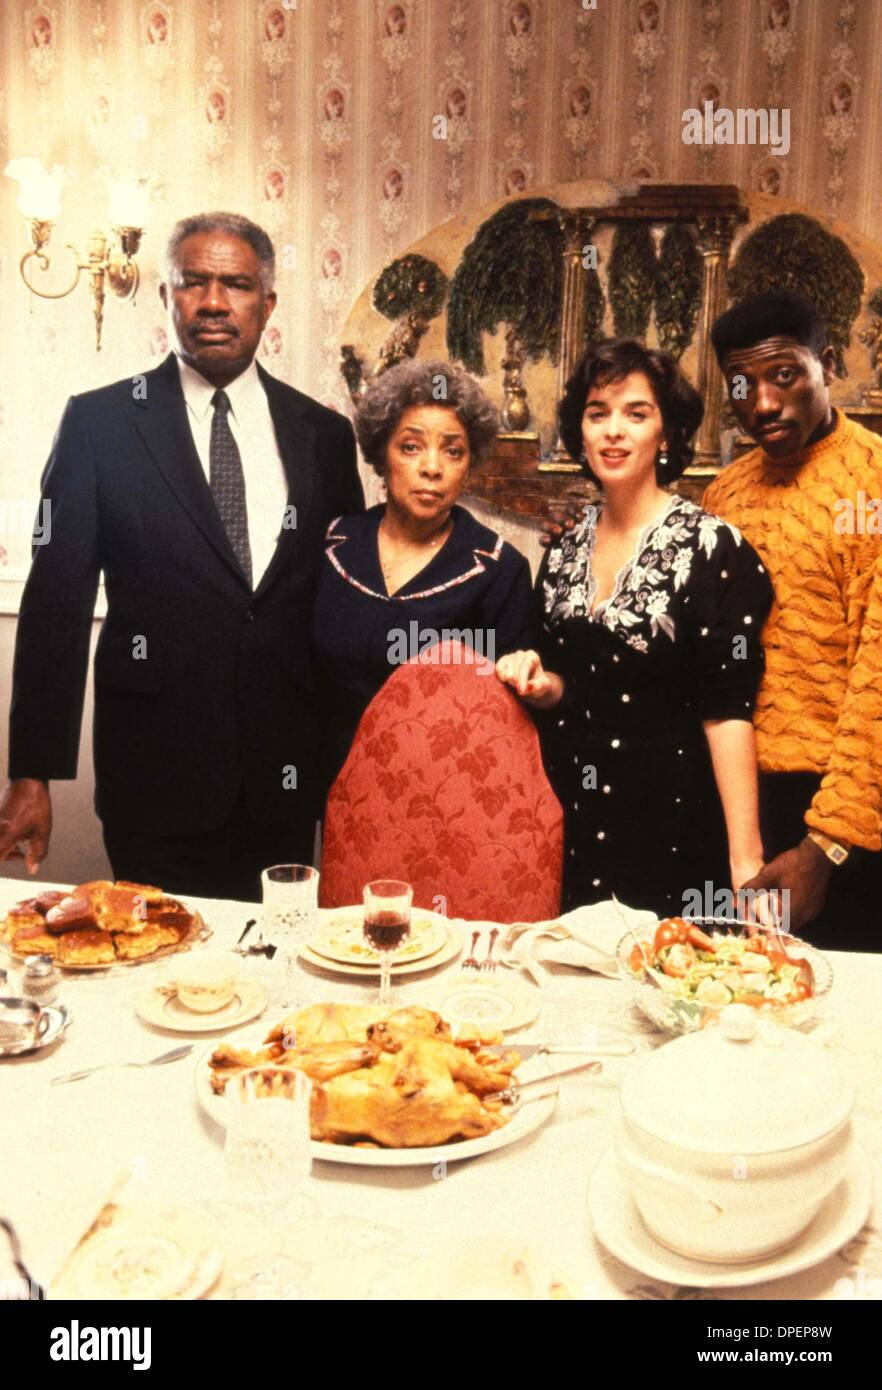 Jan. 12, 2006 - A8108.1991.JUNGLE FEVER.TV-FILM STILL. OSSIE DAVIS RUBY DEE ANNABELLA SCIORRA AND WESLEY SNIPES. Stock Photo